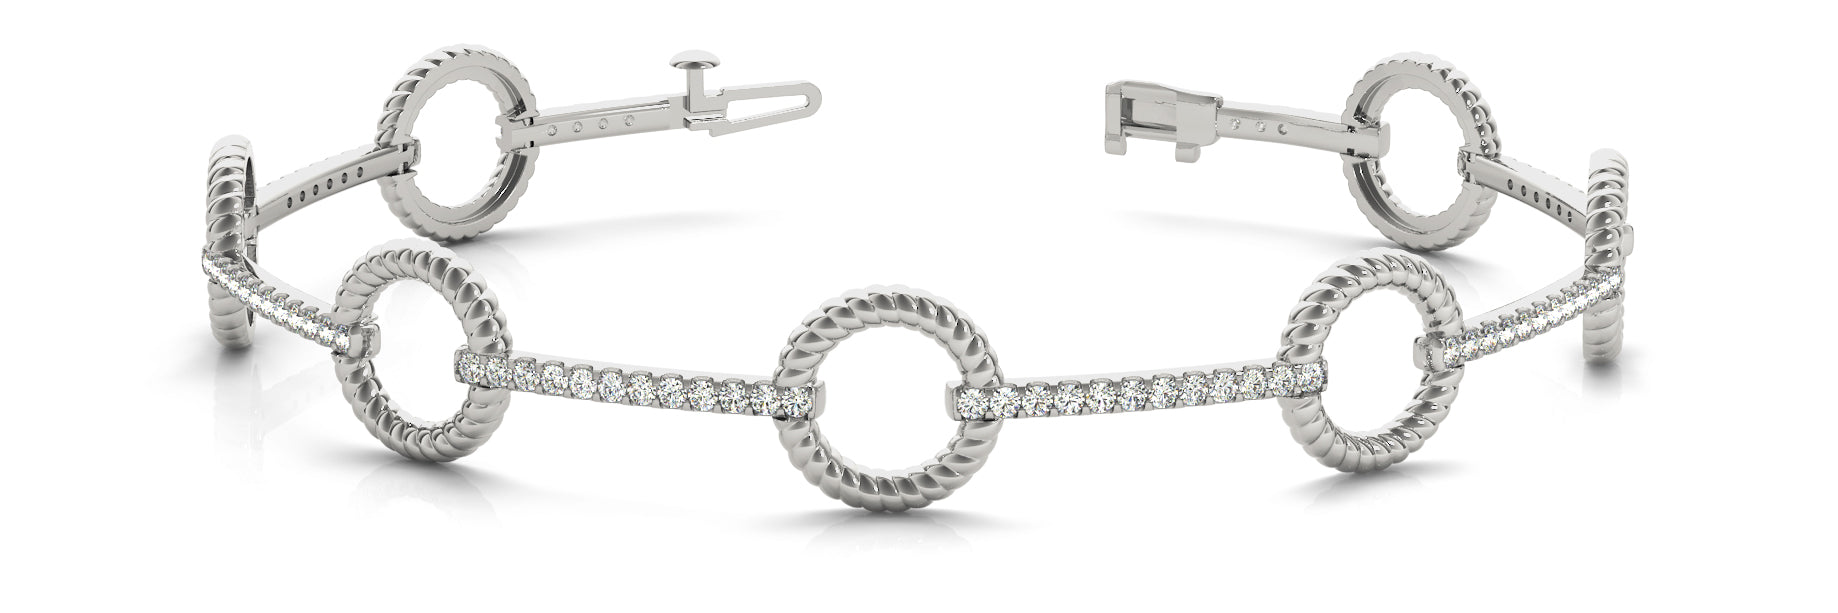 Fancy Diamond Bracelet Ladies 1.08ct tw - 14kt White Gold